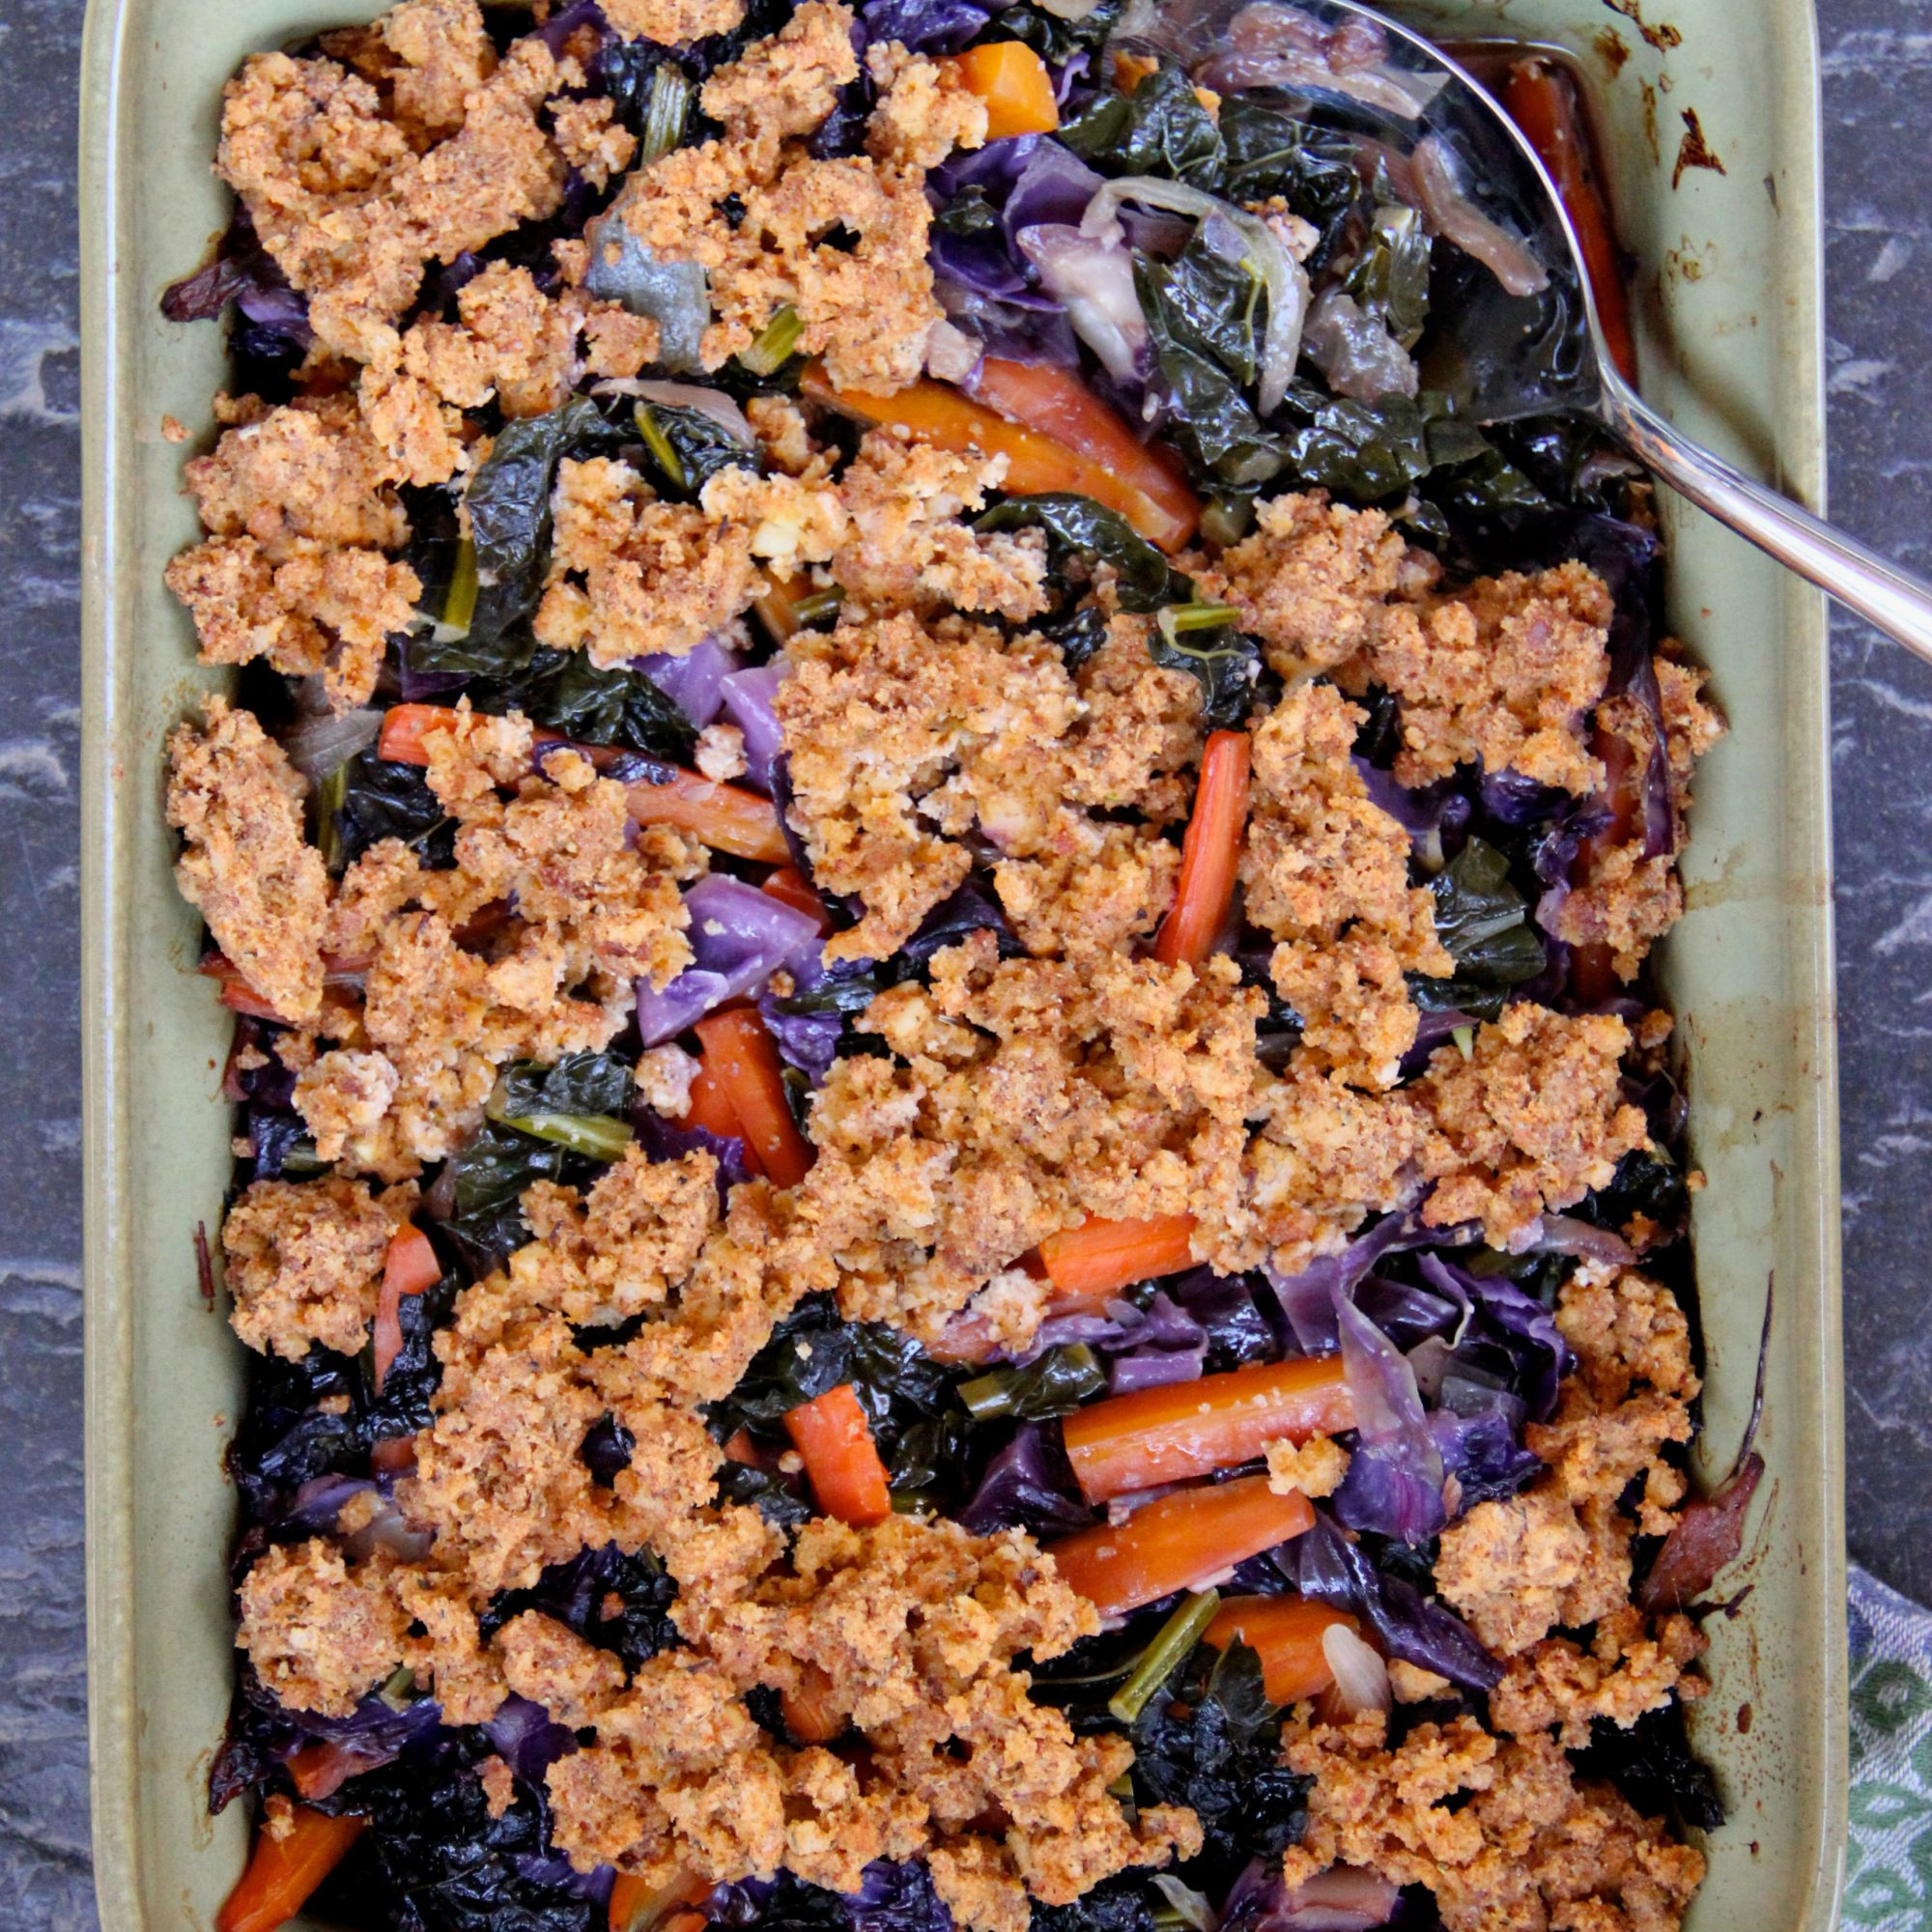 HD-201405-r-winter-veggie-casserole-with-tofu-crumble.jpg